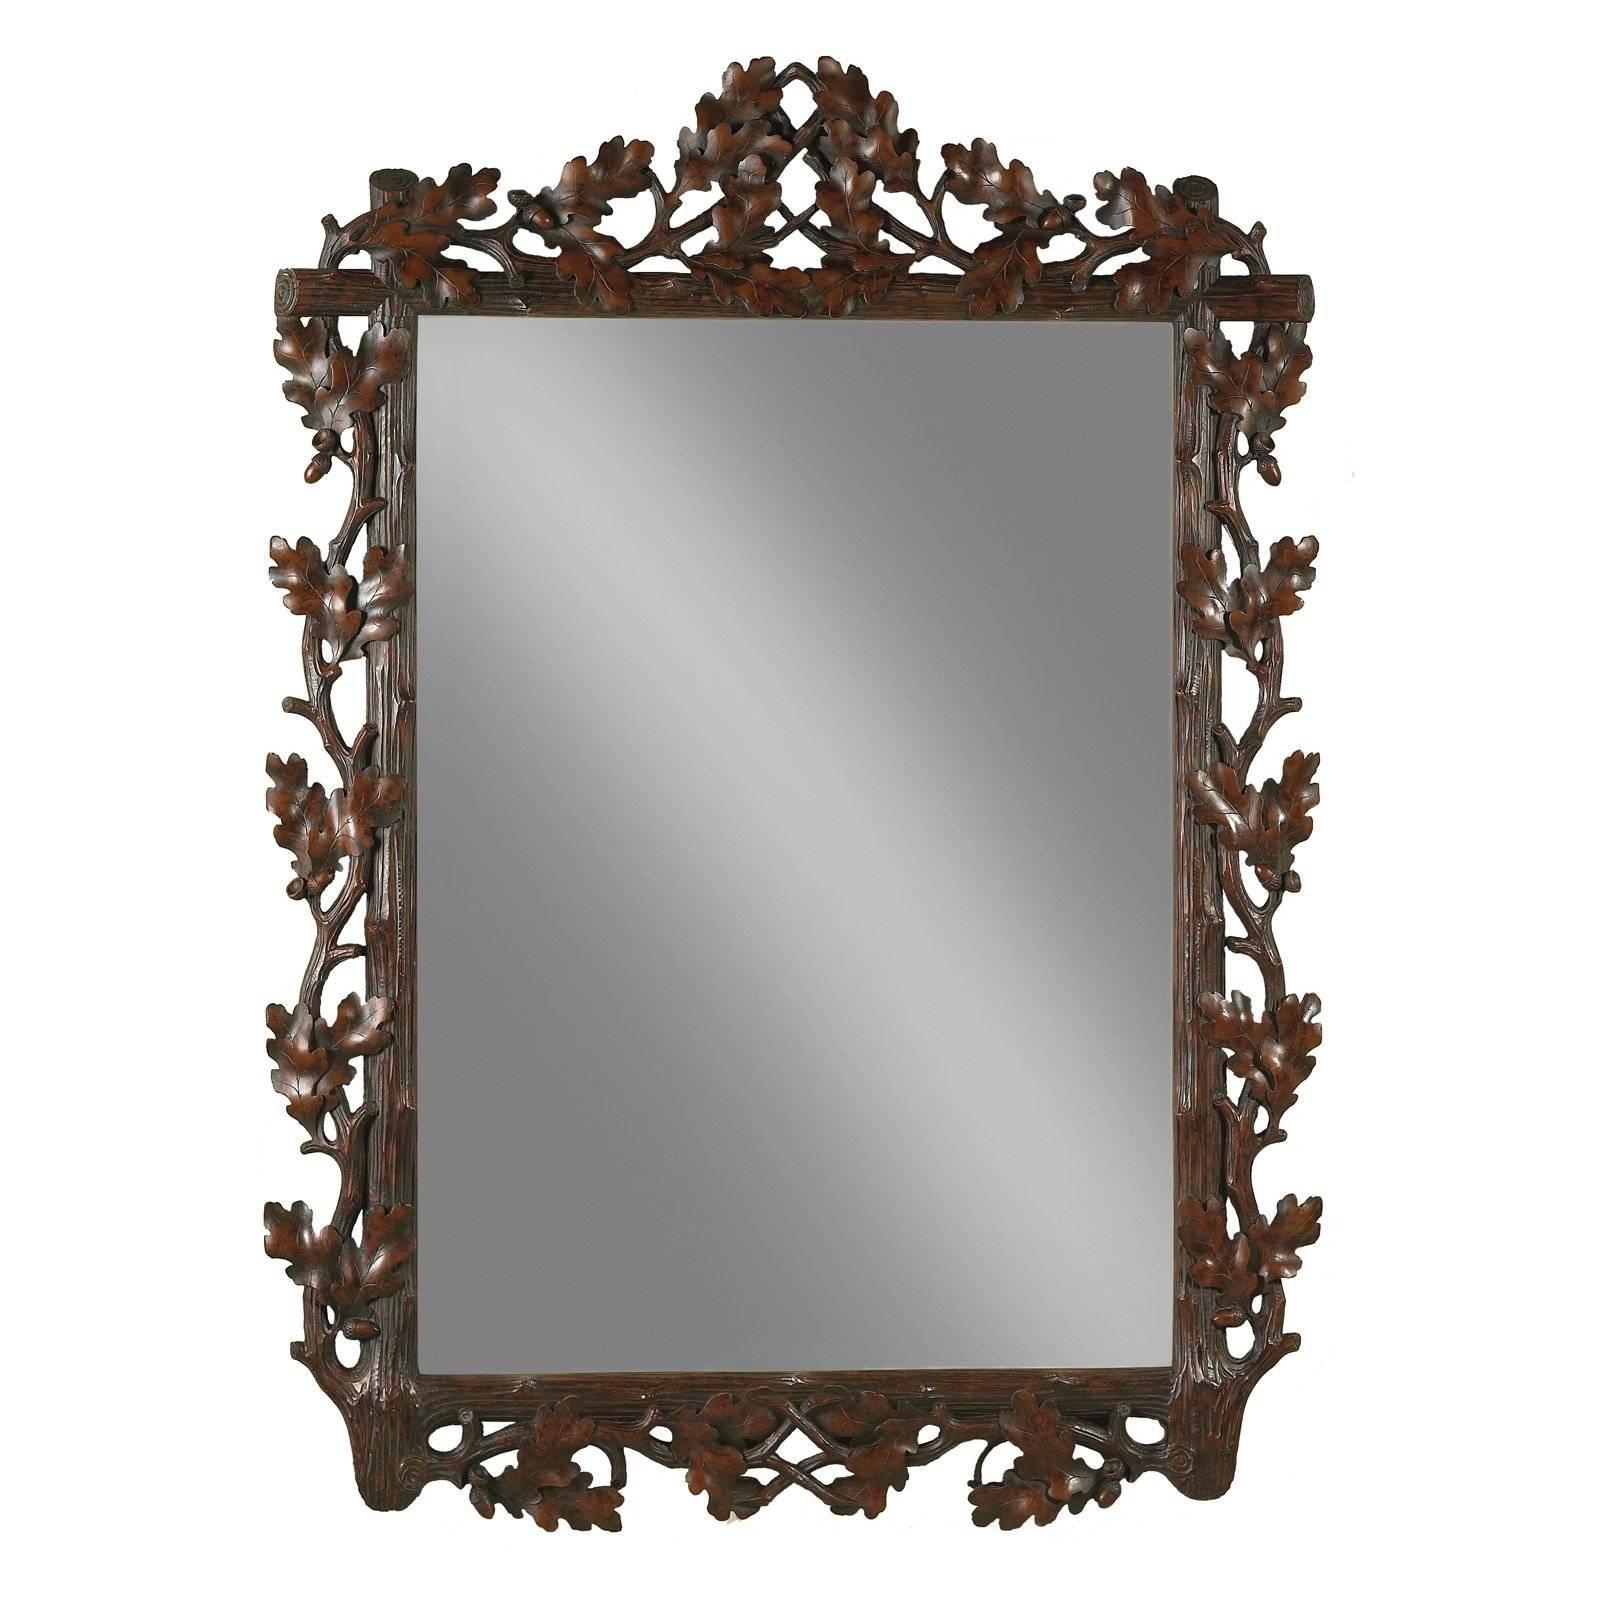 Oklahoma Casting Large Oak Leaf Bevel Wall Mirror - Mirrors At regarding Large Oak Mirrors (Image 21 of 25)